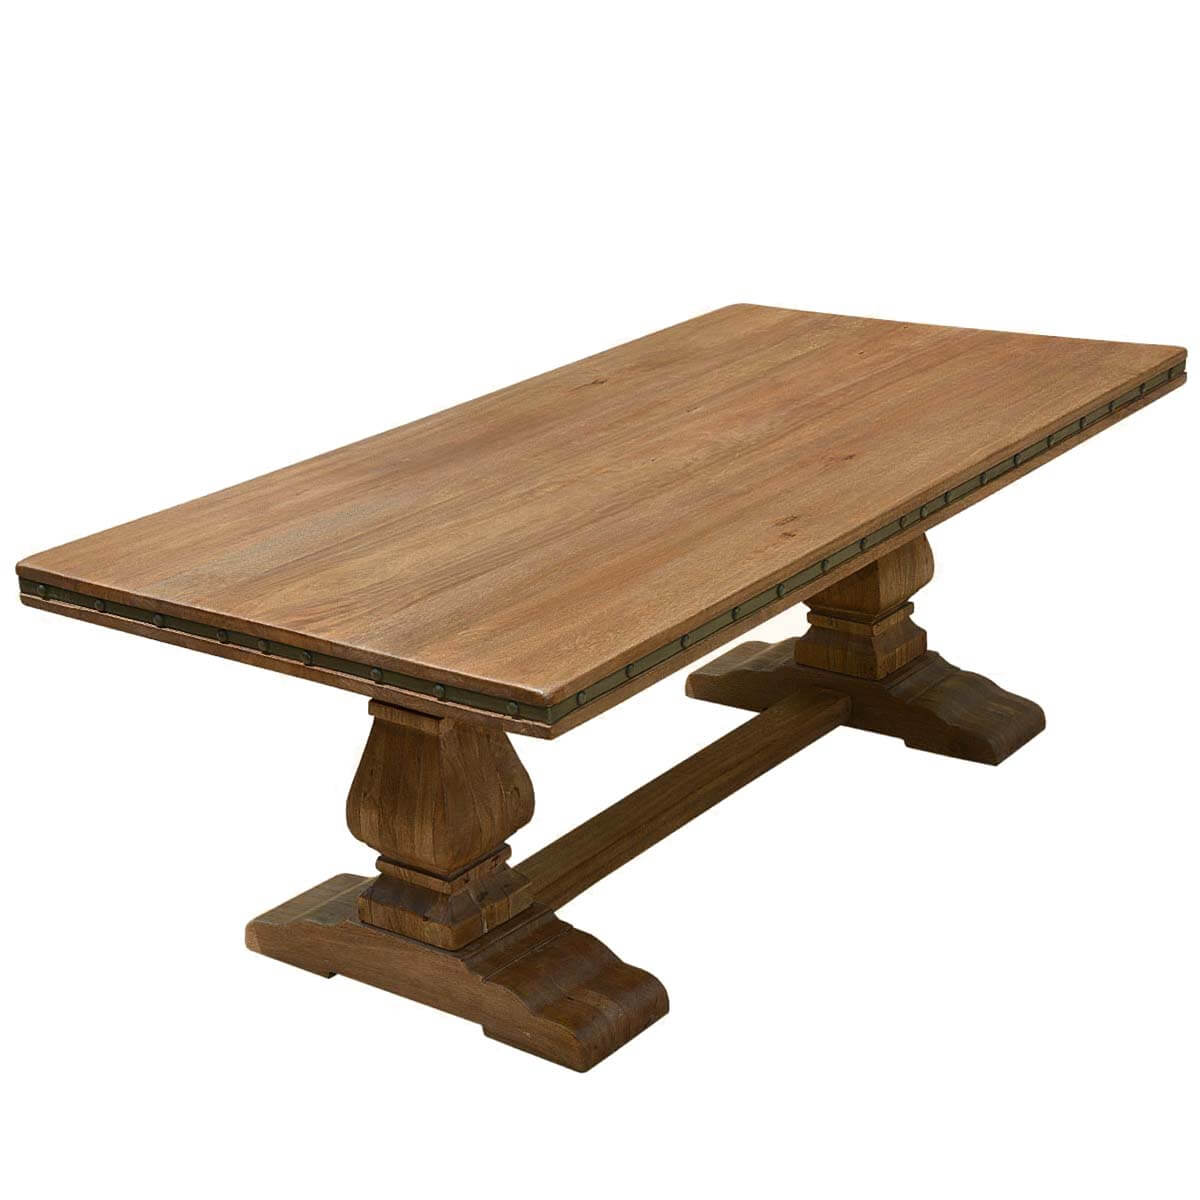 Dining Room Table Bases Wood: Rustic Solid Wood Trestle Pedestal Base Harvest Dining Table